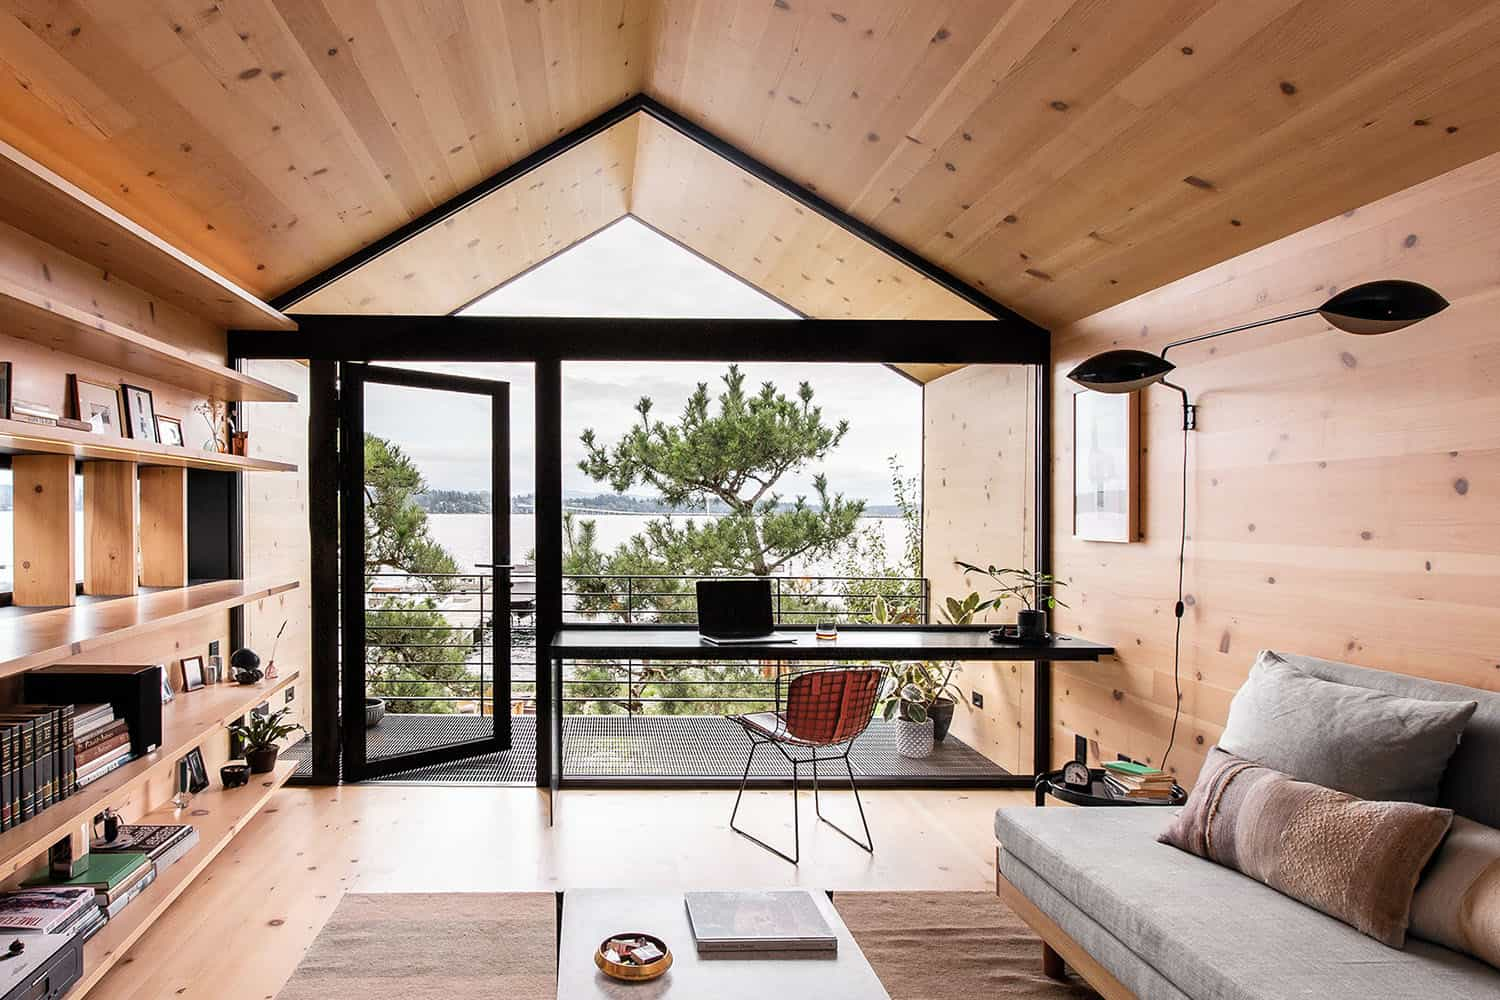 Compact wooden shelter captures views over Seattle shoreline